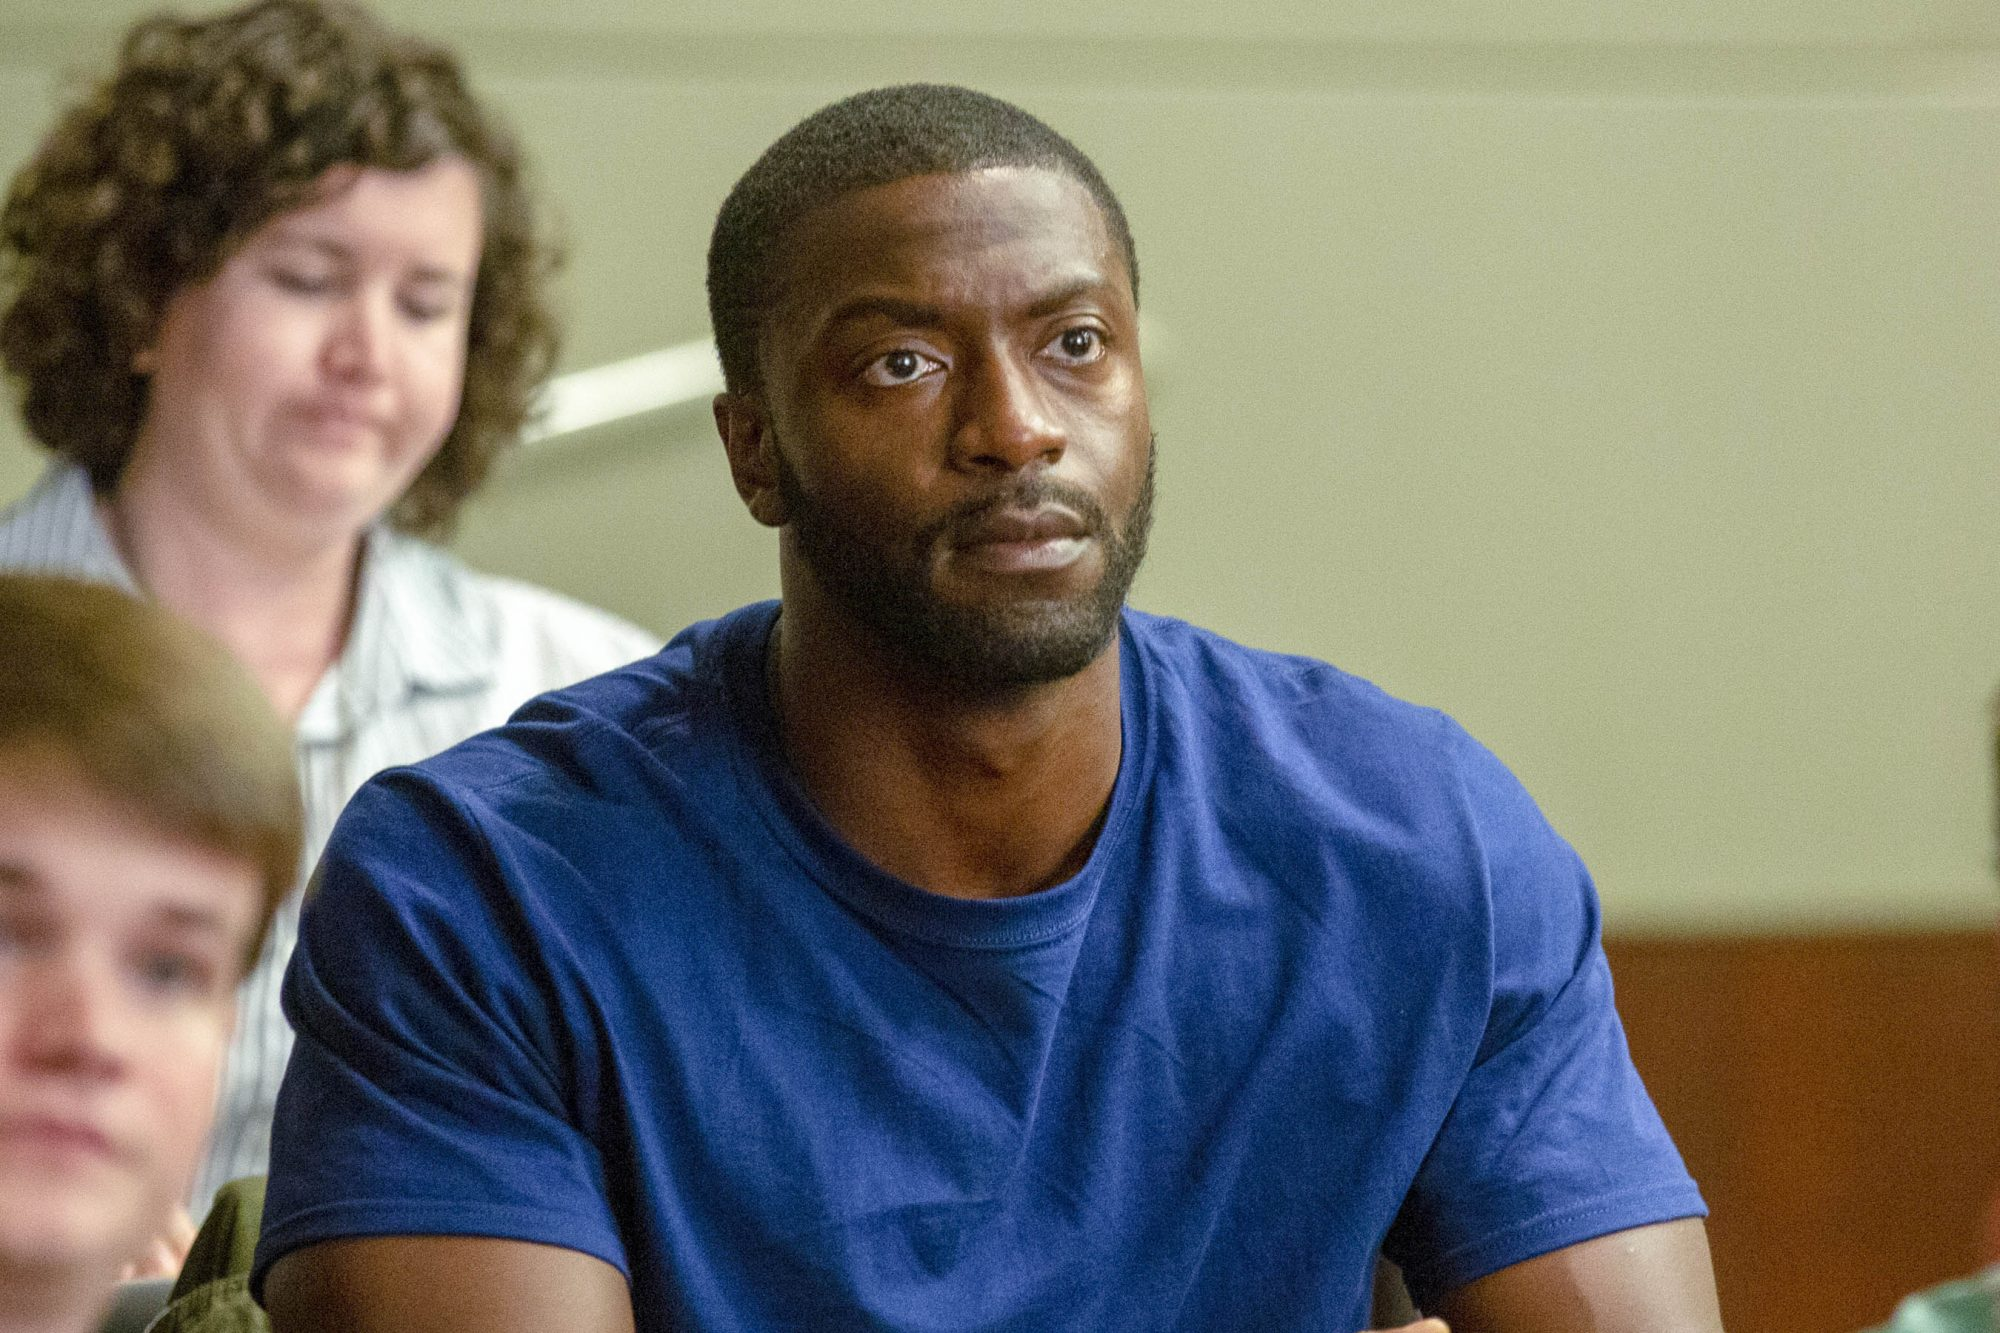 Aldis Hodge stars as Brian Banks in Tom Shadyac's BRIAN BANKS, a Bleecker Street release. Credit: Katherine Bomboy / Bleecker Street